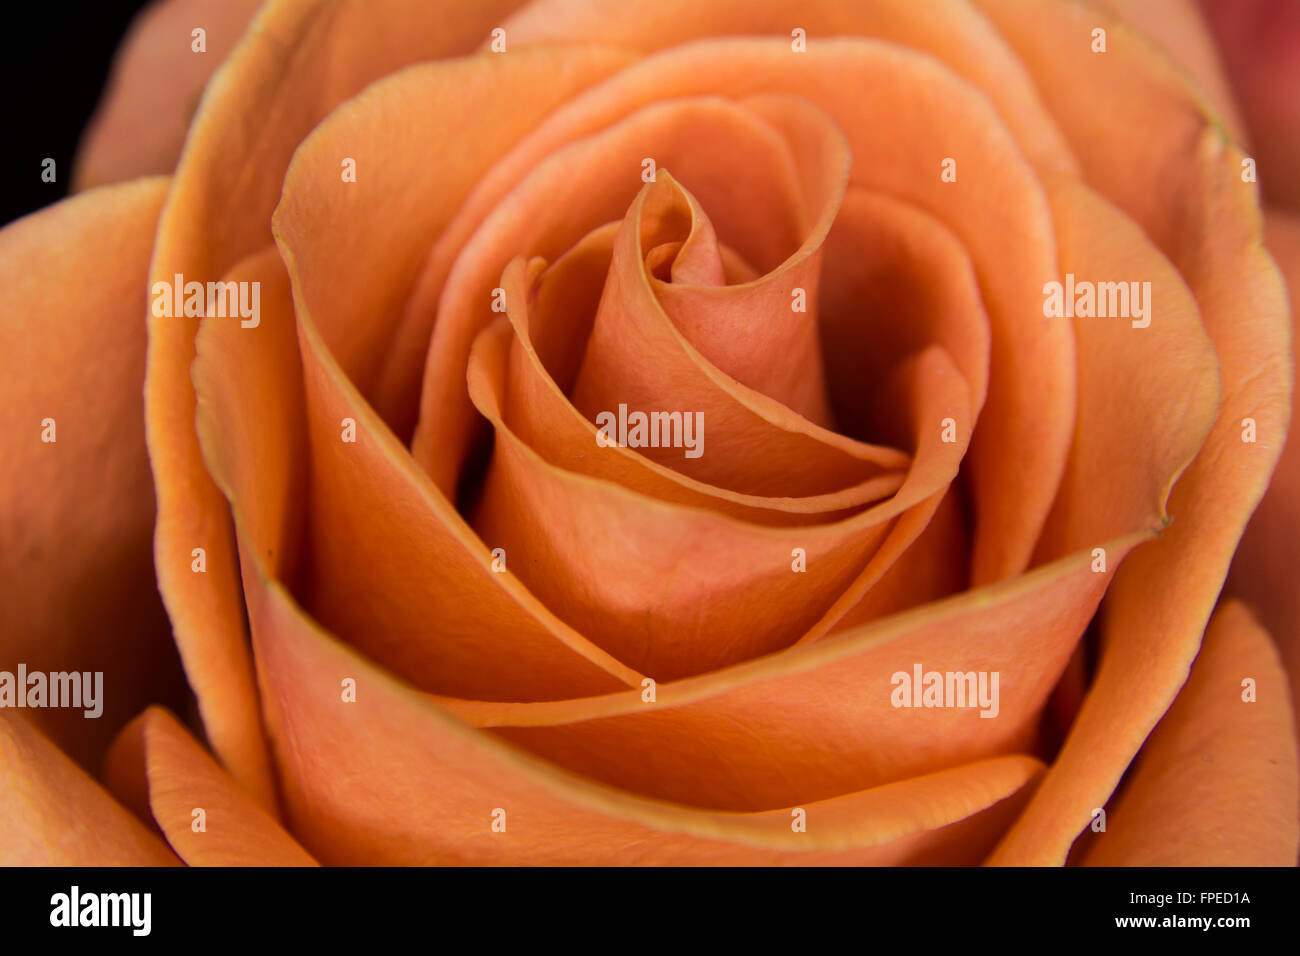 peach colored rose stock photos peach colored rose stock images